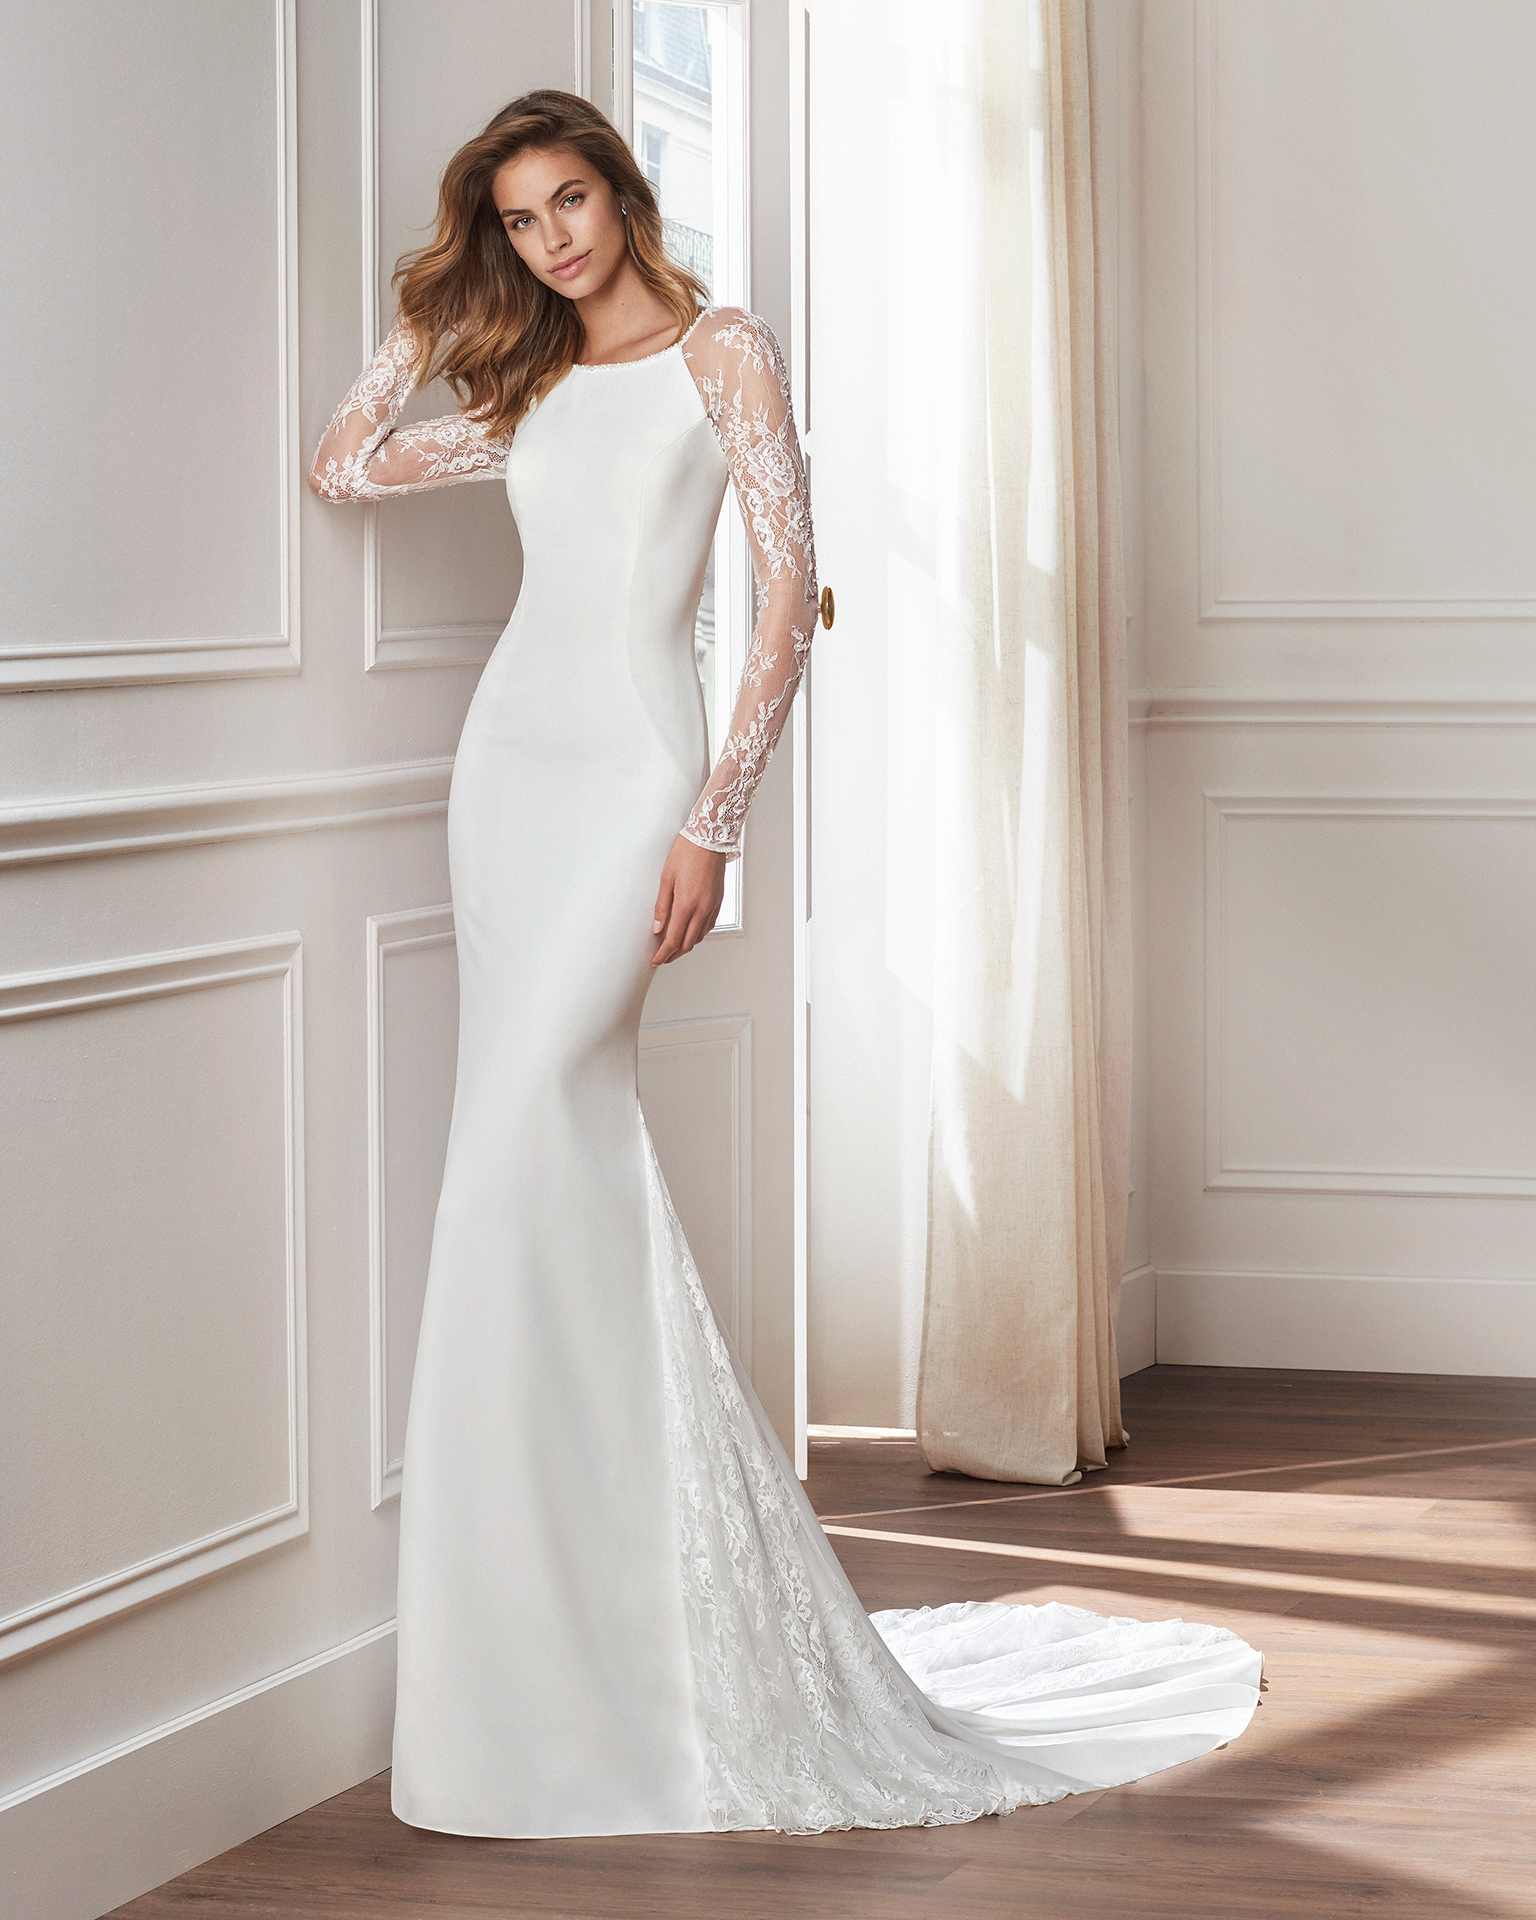 Sheath-style wedding dress in crepe. Long beaded lace sleeves and skirt with lace insets. Available in natural. 2019  Collection.